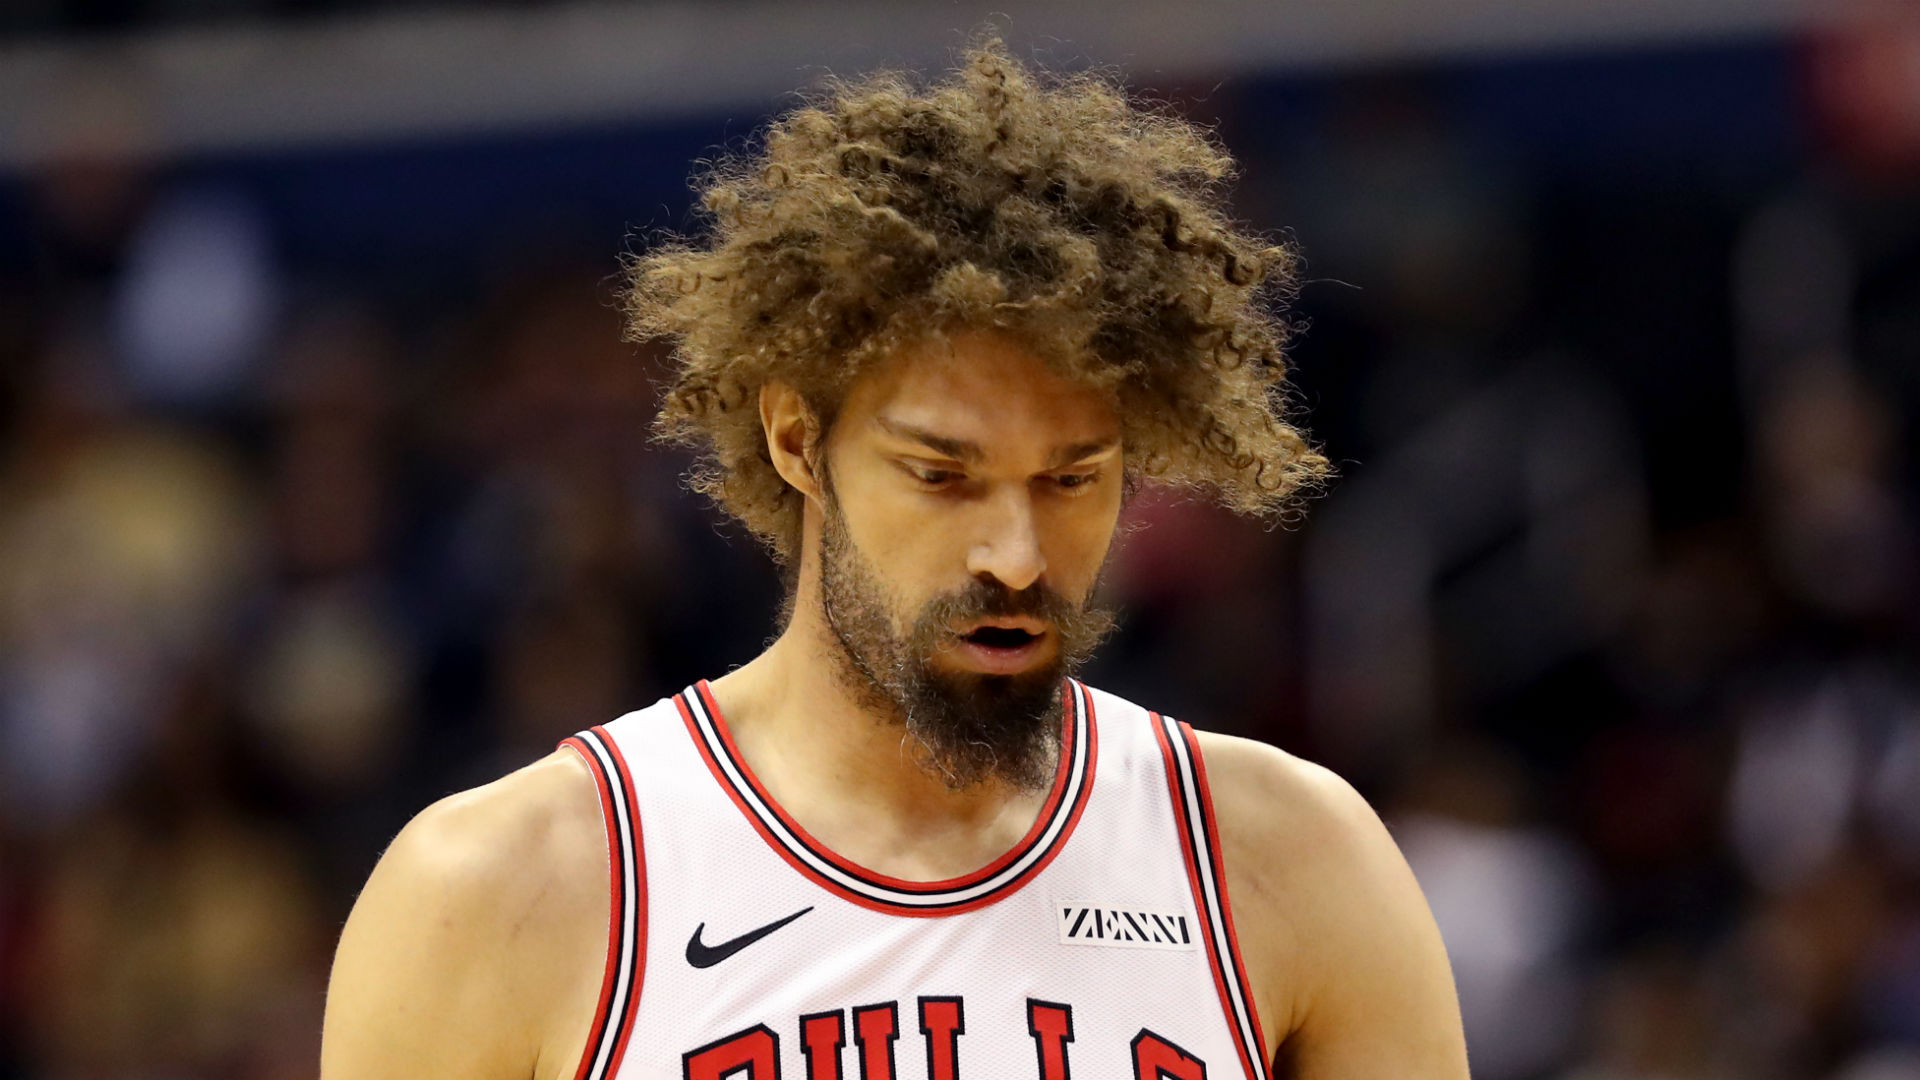 NBA trade rumors: These teams are willing to give up first-round picks, Sporting News sources say Robin-lopez-getty-011119-ftrjpg_j81ewm02gc791rohd6iu25fl9